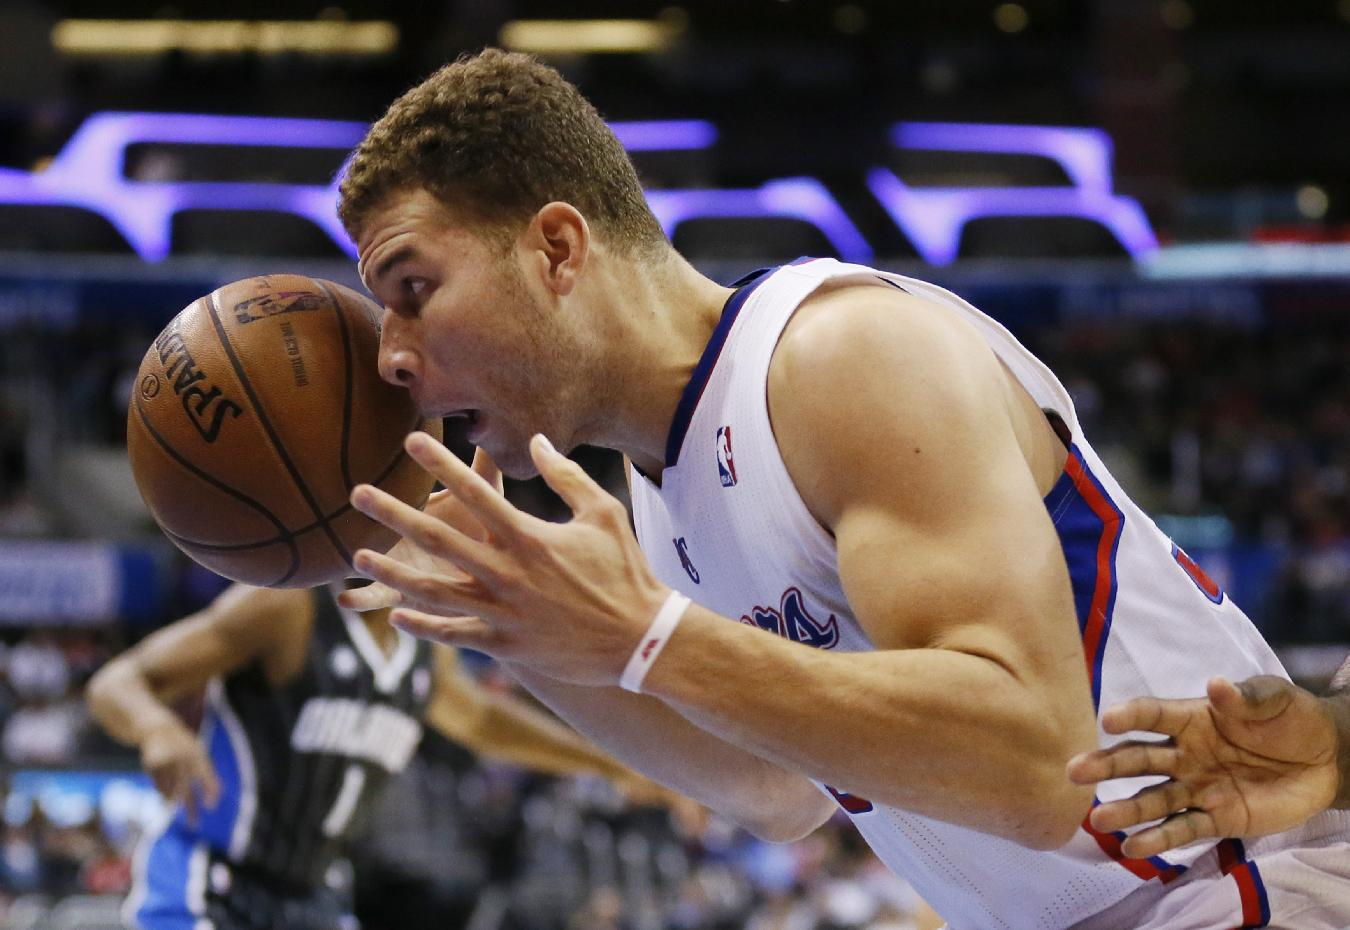 Los Angeles Clippers' Blake Griffin eyes the ball before dunking against the Orlando Magic during the second half of an NBA basketball game in Los Angeles, Monday, Jan. 6, 2014. The Clippers won 101-81